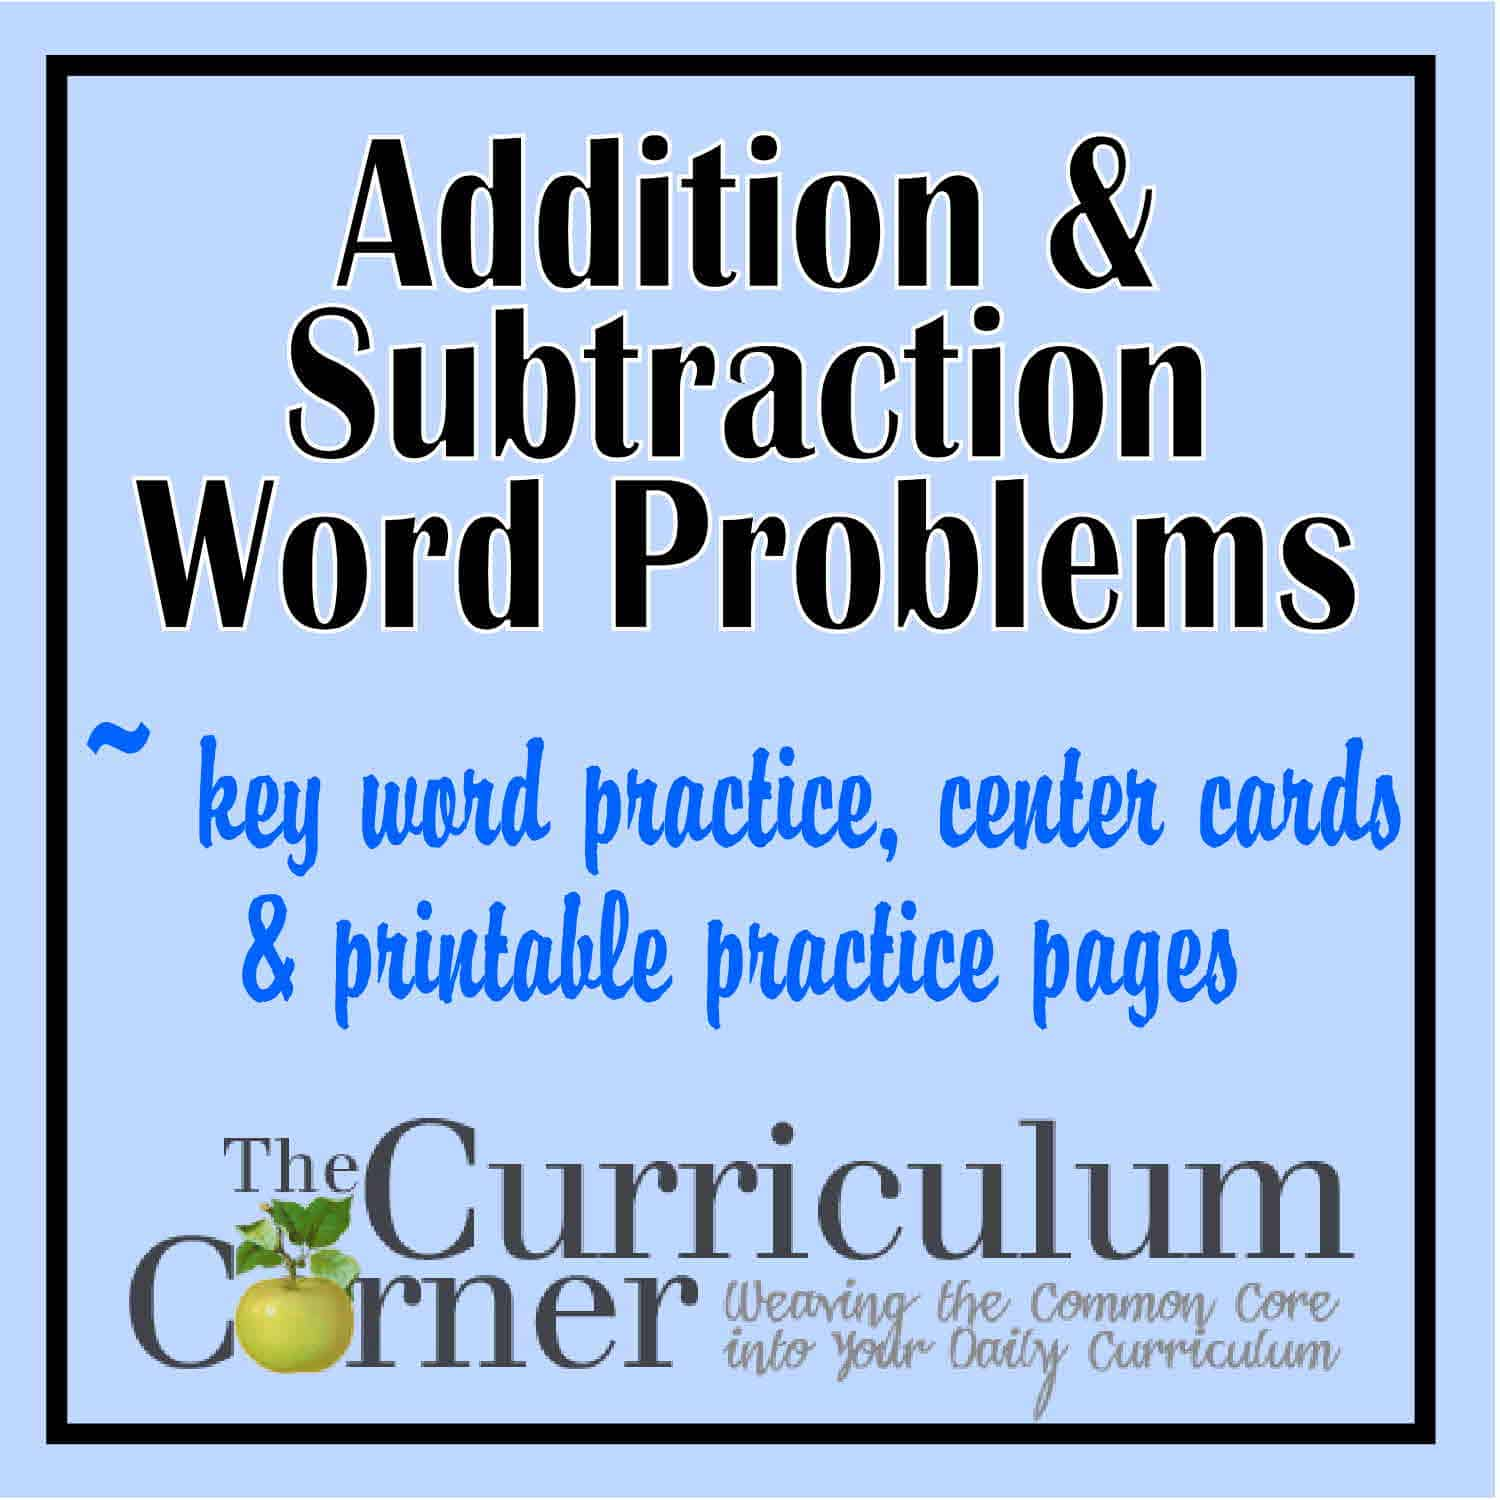 Addition & Subtraction Word Problems